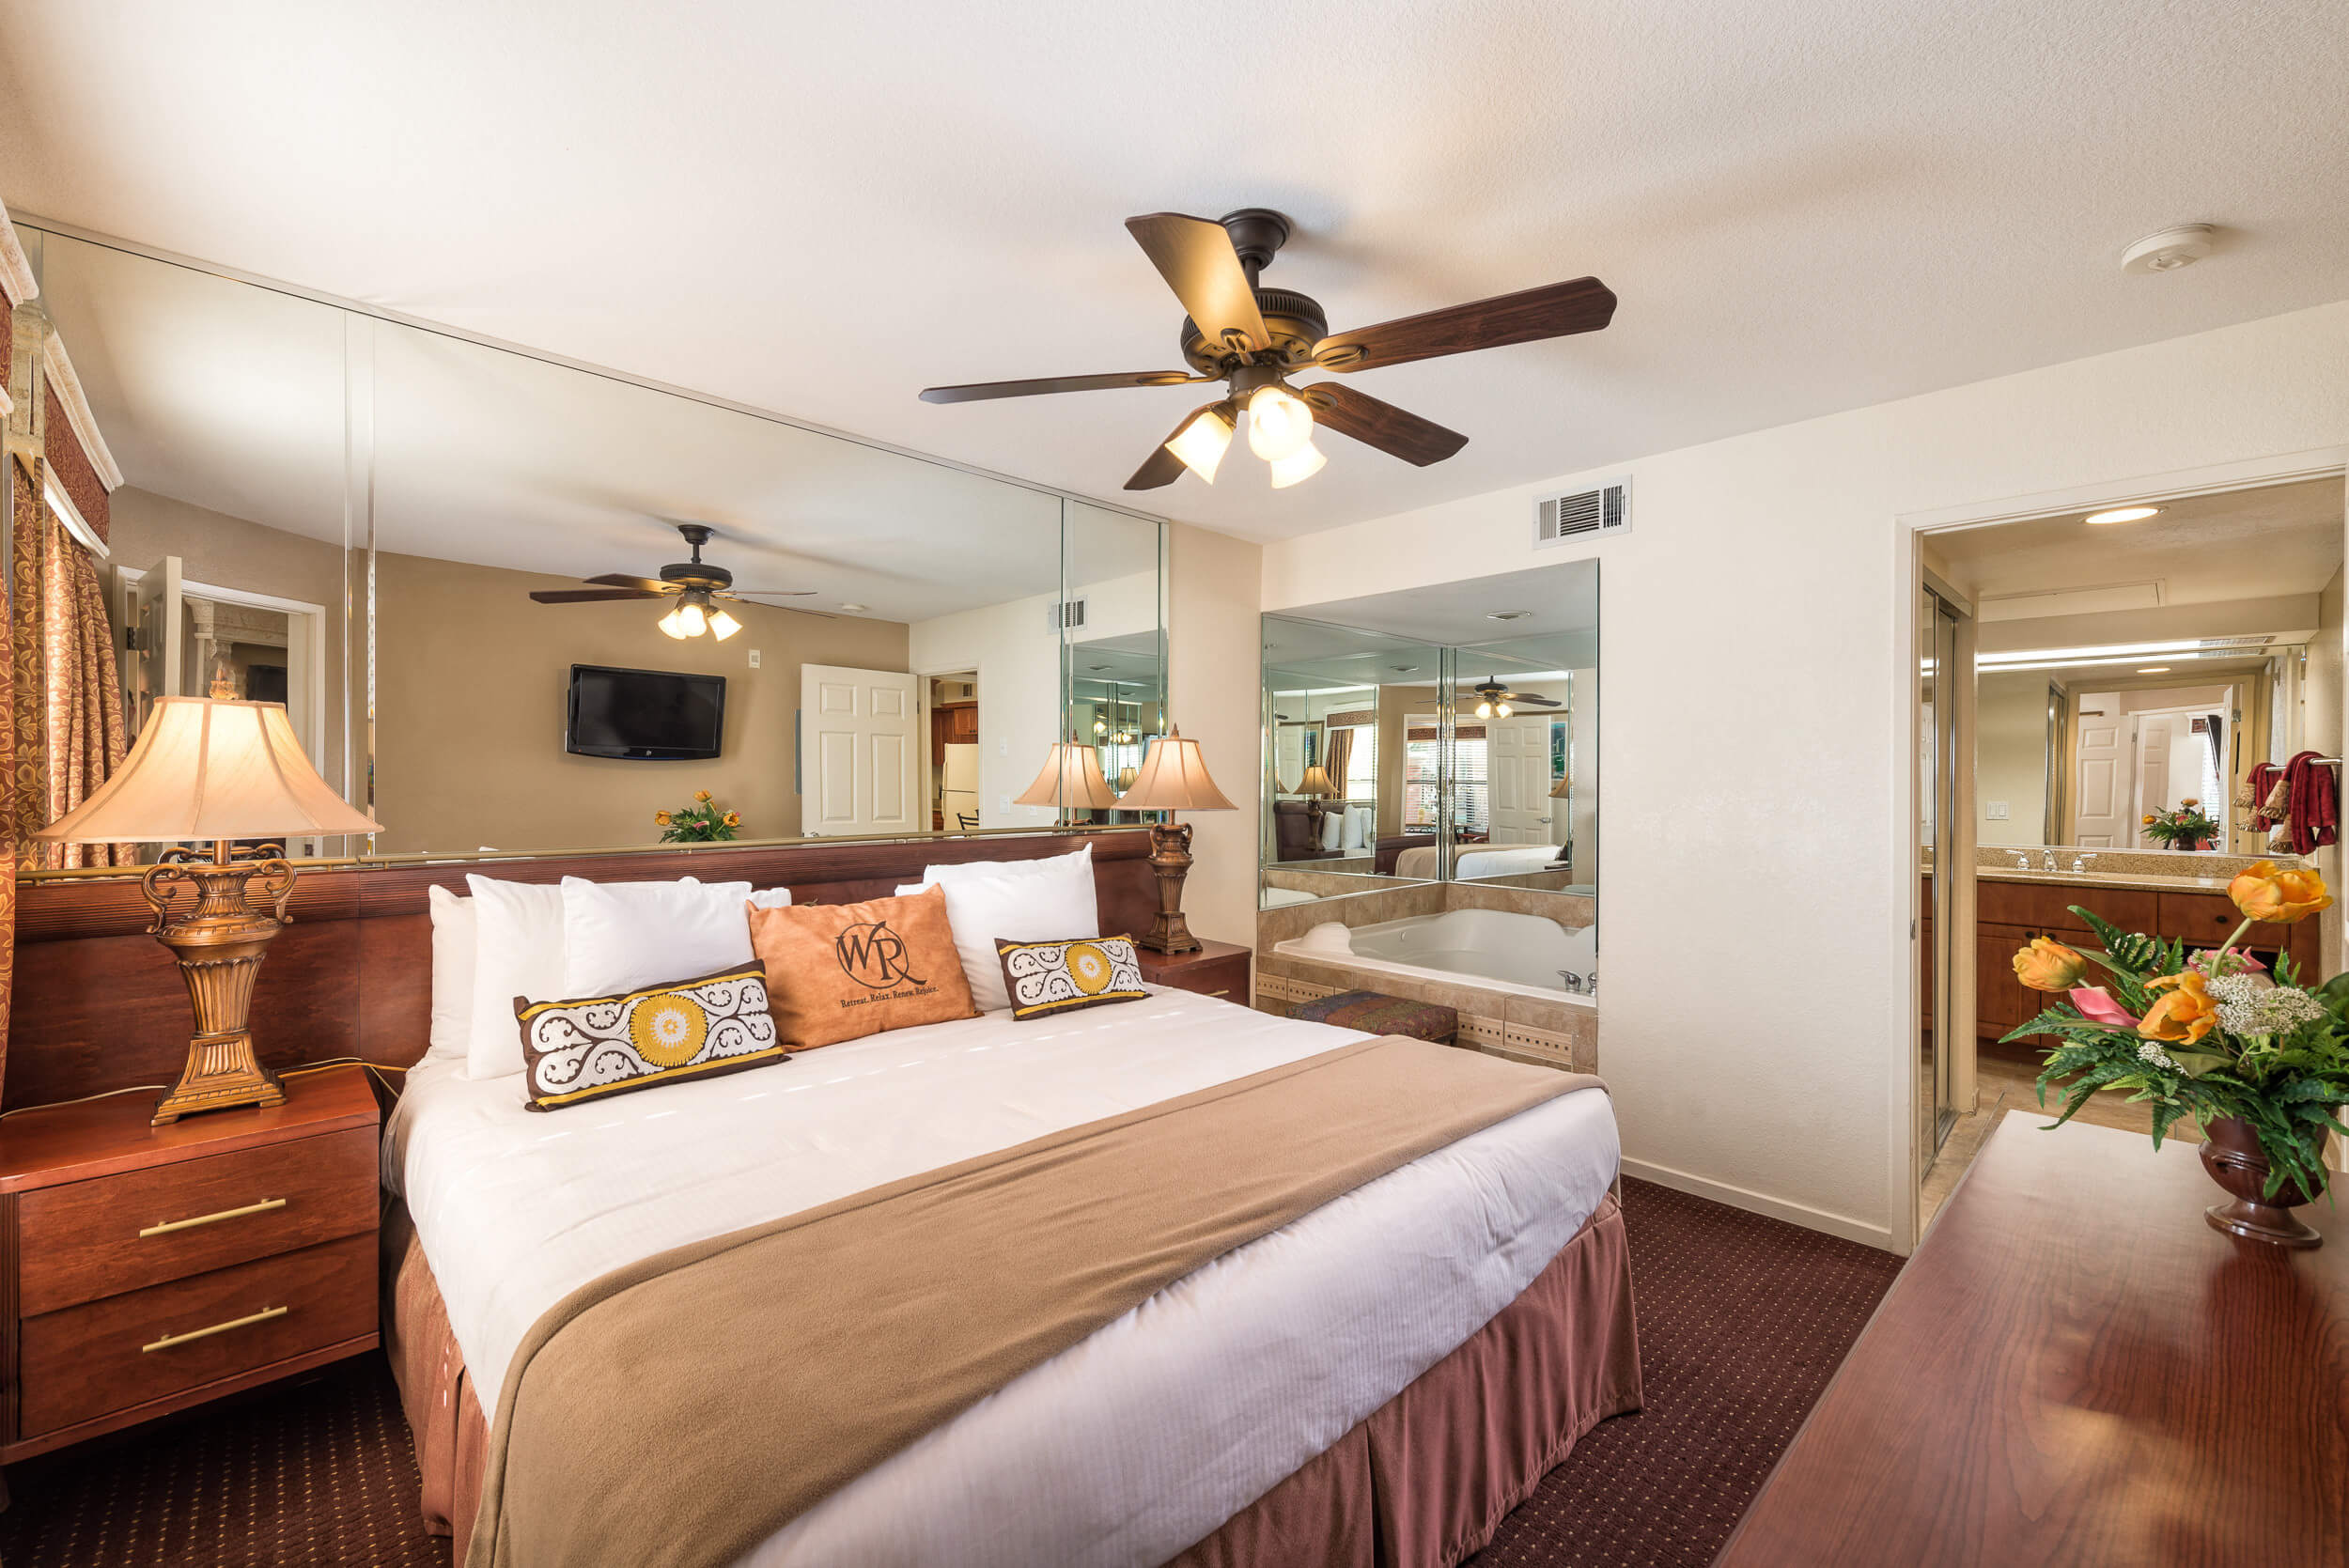 Photos of vacation rentals las vegas at westgate flamingo Westgate town center 2 bedroom deluxe